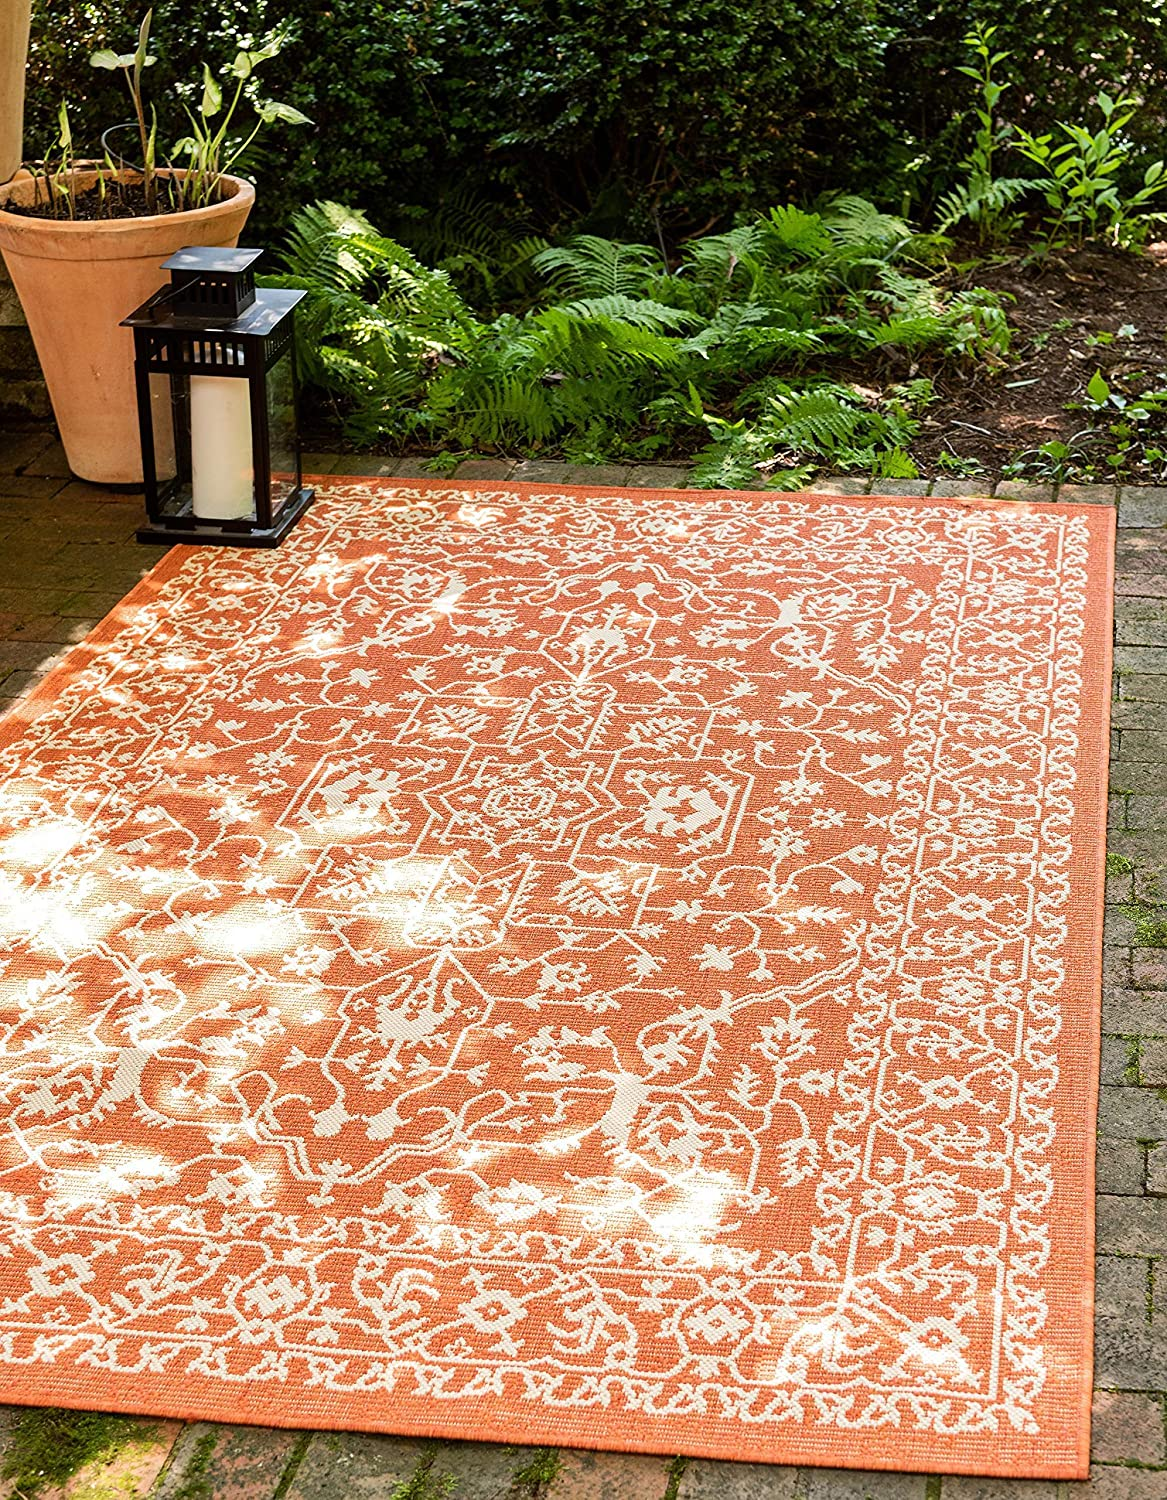 Unique Loom Outdoor Botanical Collection Traditional Floral Border Transitional Indoor and Outdoor Flatweave Terracotta Area Rug (5' 0 x 8' 0)